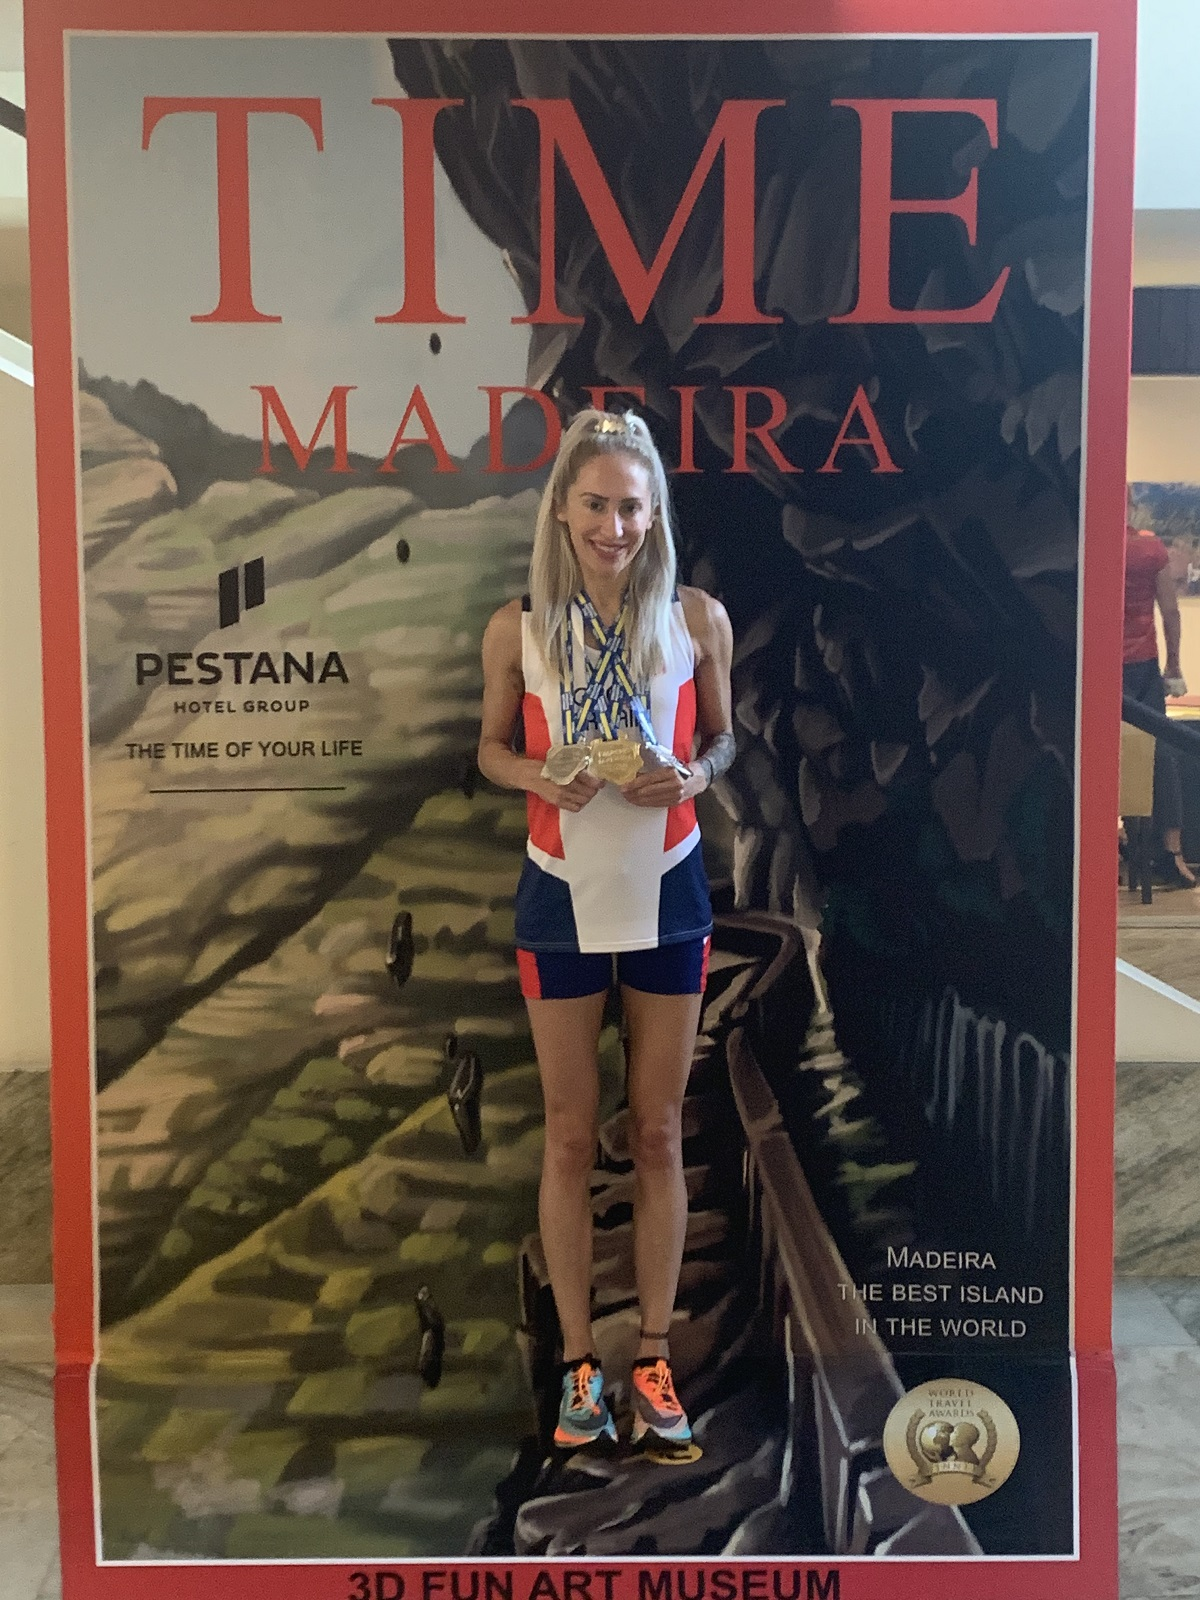 Lisa Gawthorne on the cover of Time magazine